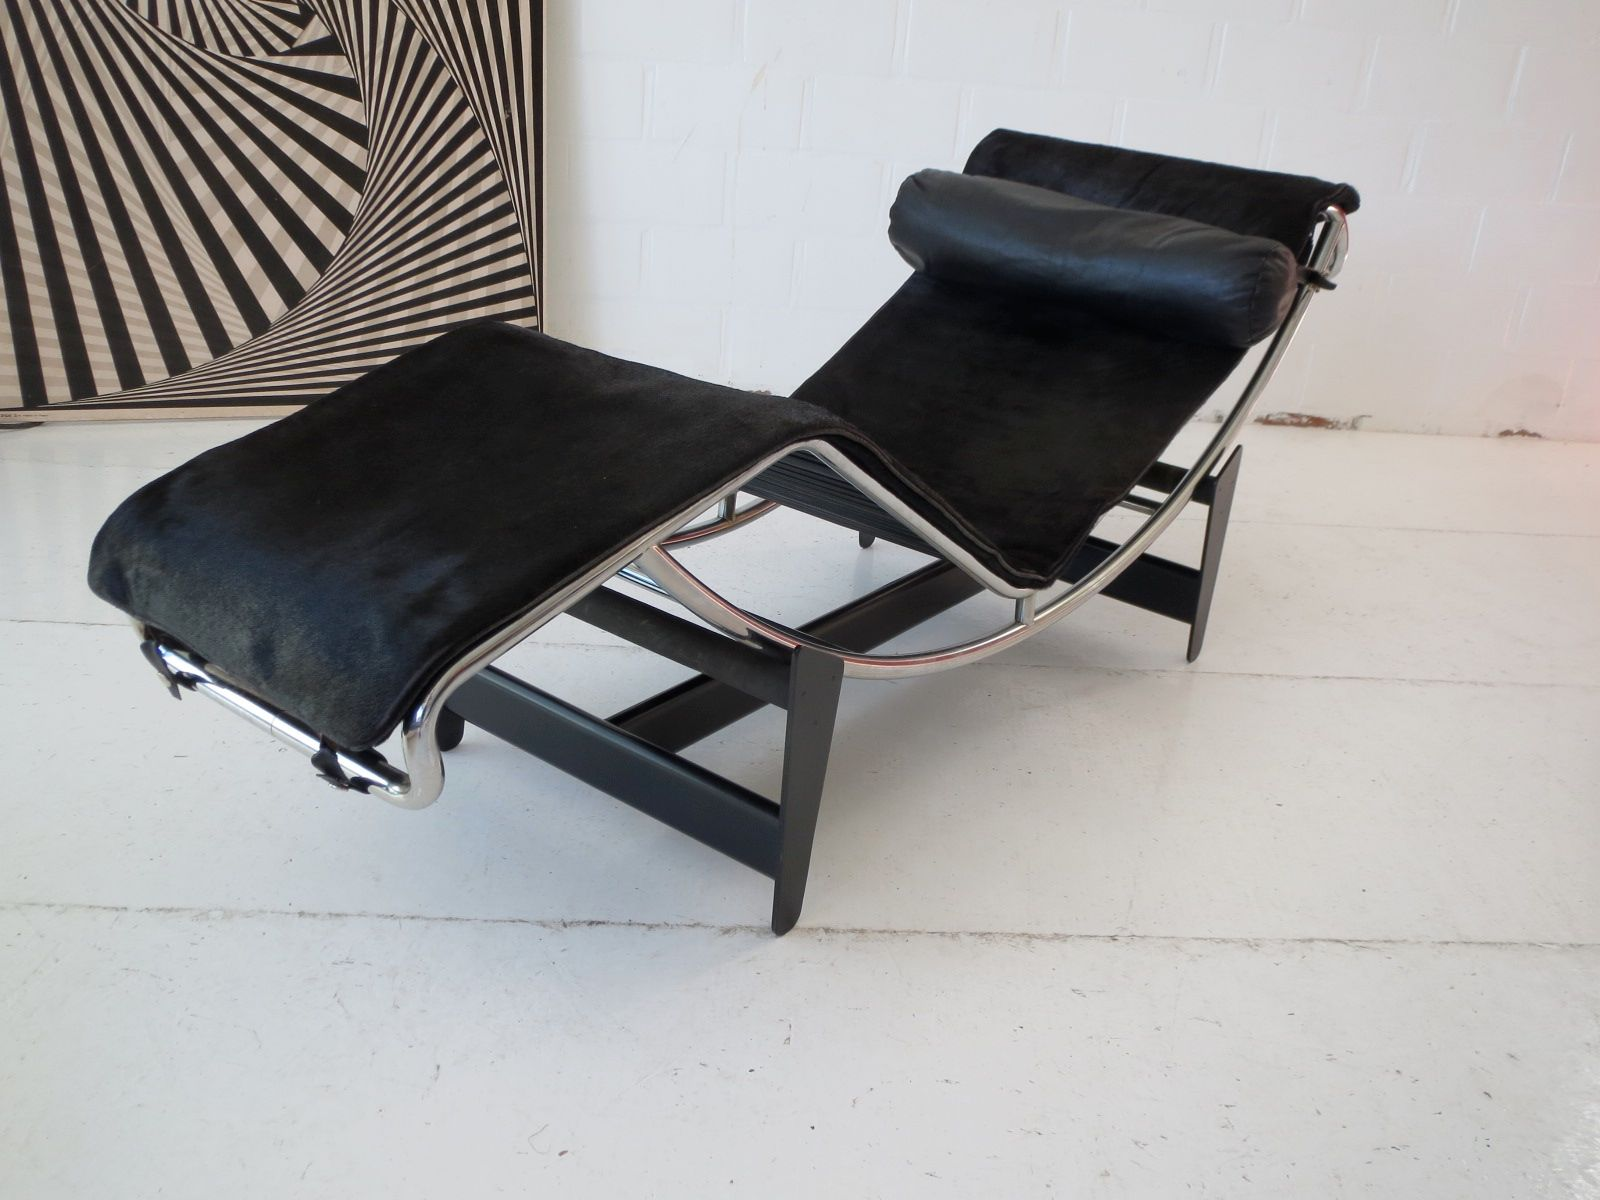 Early under 750 numbered lc4 chaise longue by le for Chaise longue le corbusier prezzo